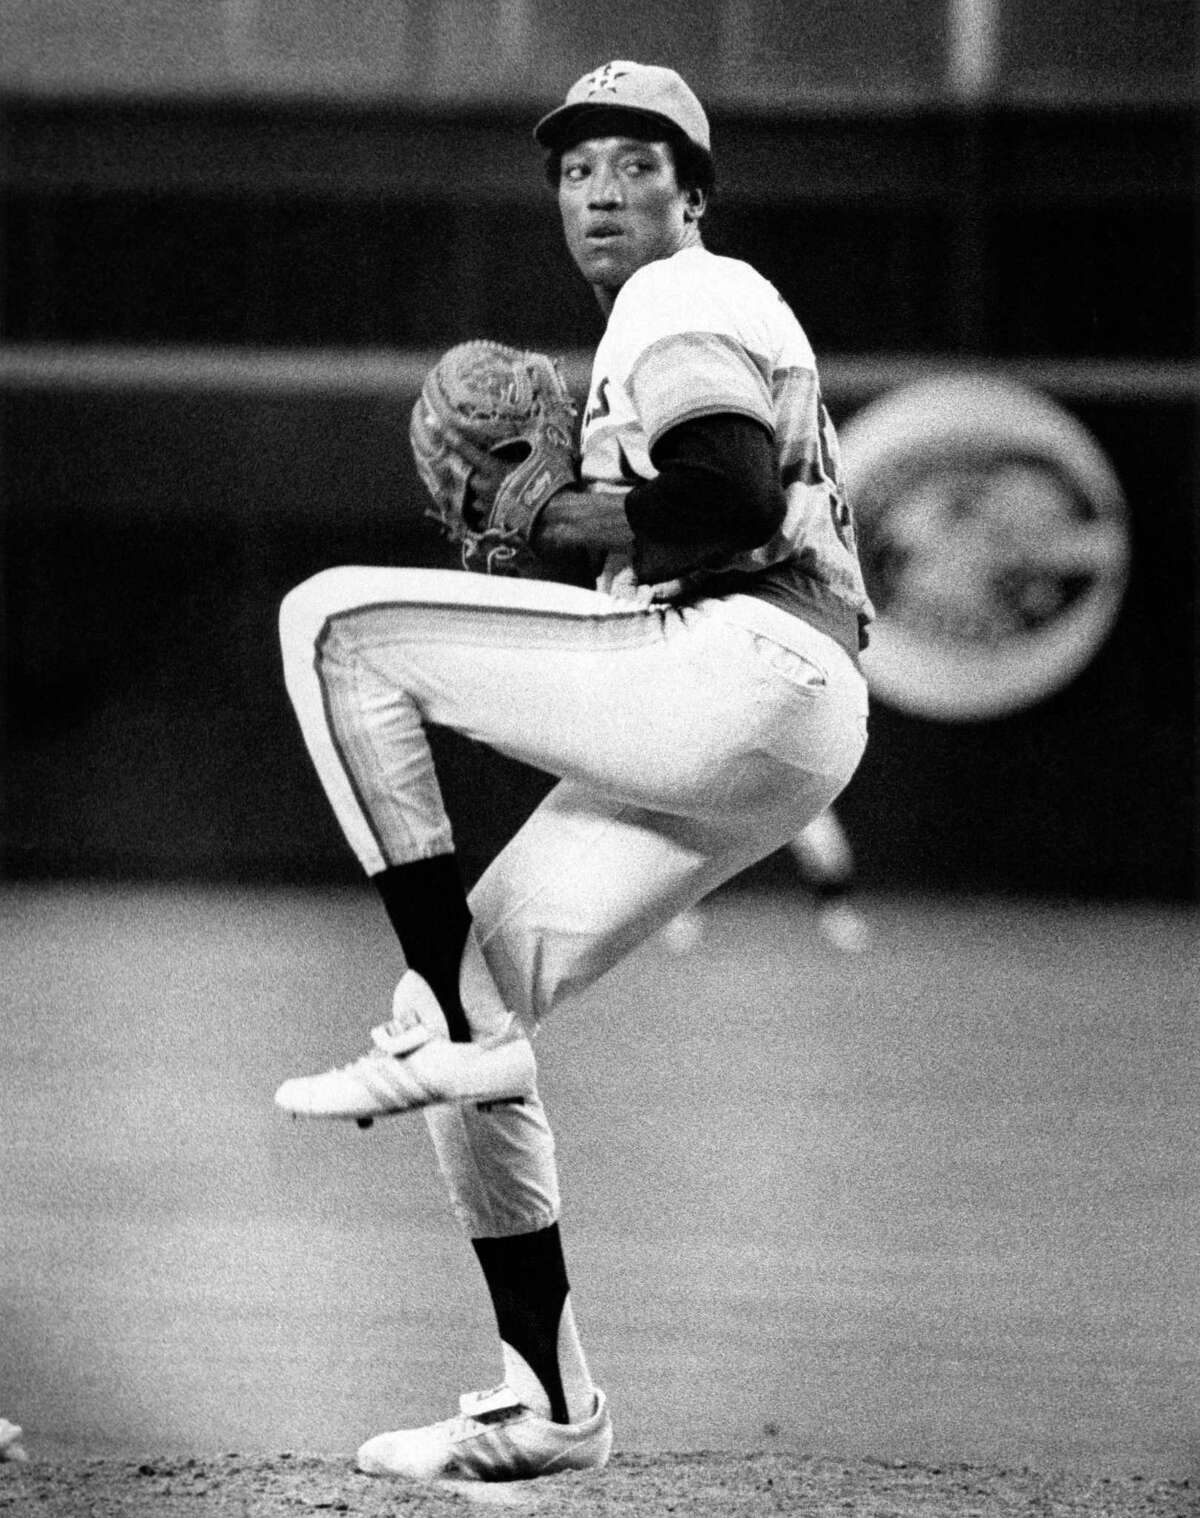 07/04/1978 - Houston Astros pitcher James Rodney (J.R.) Richard winds up in the Astrodome.